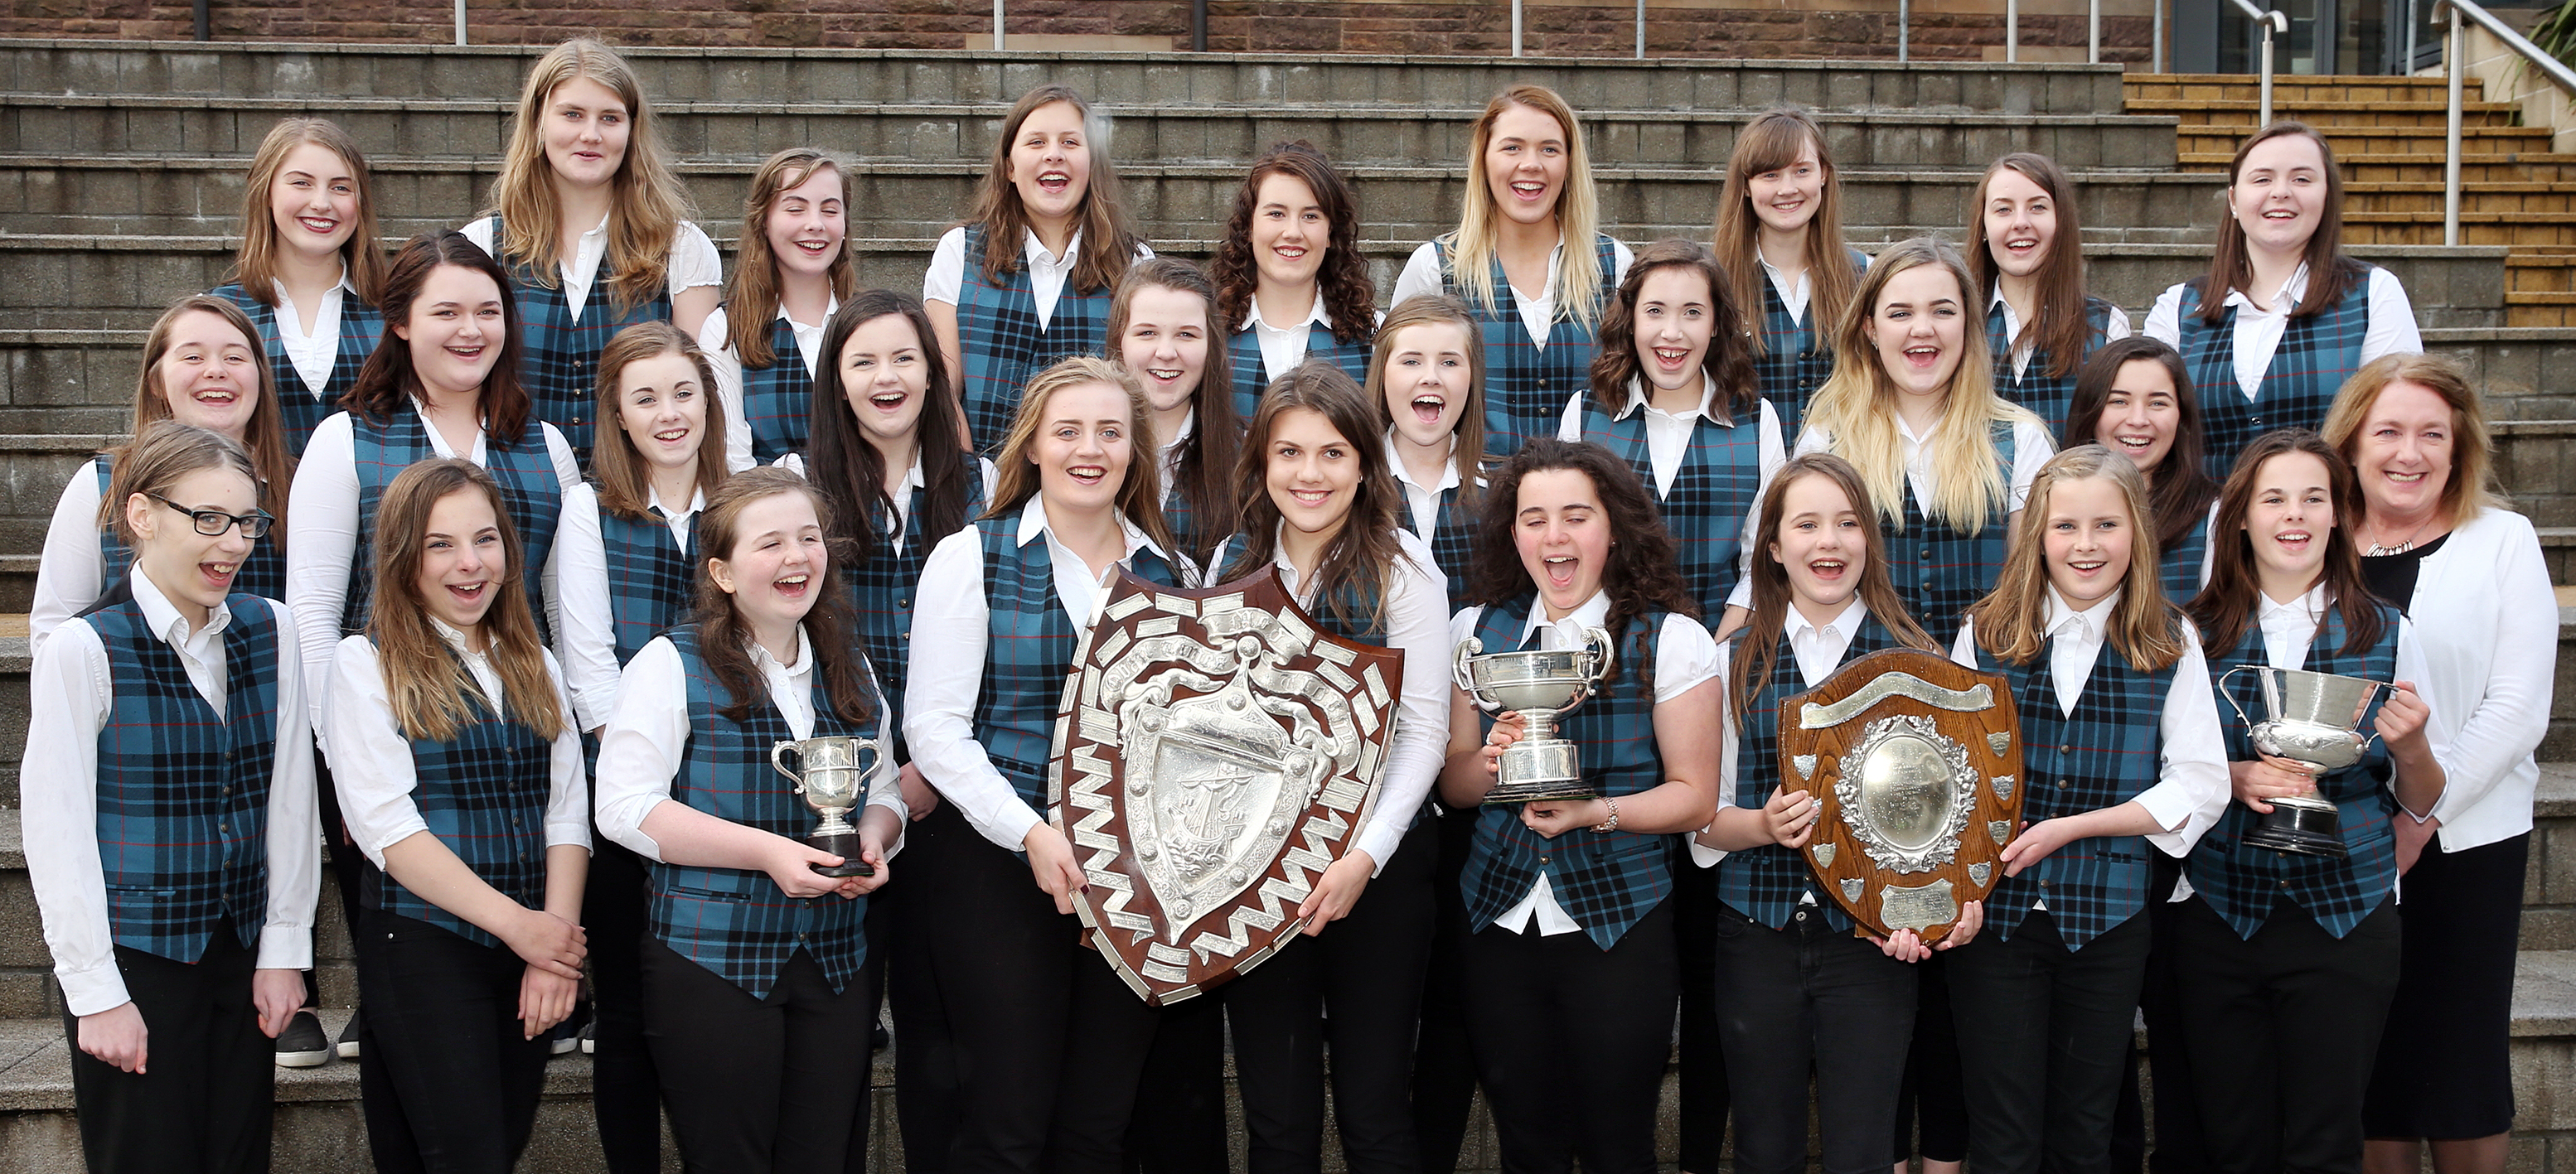 Sgoil MhicNeacail swept the boards in the senior choir events on Tuesday.